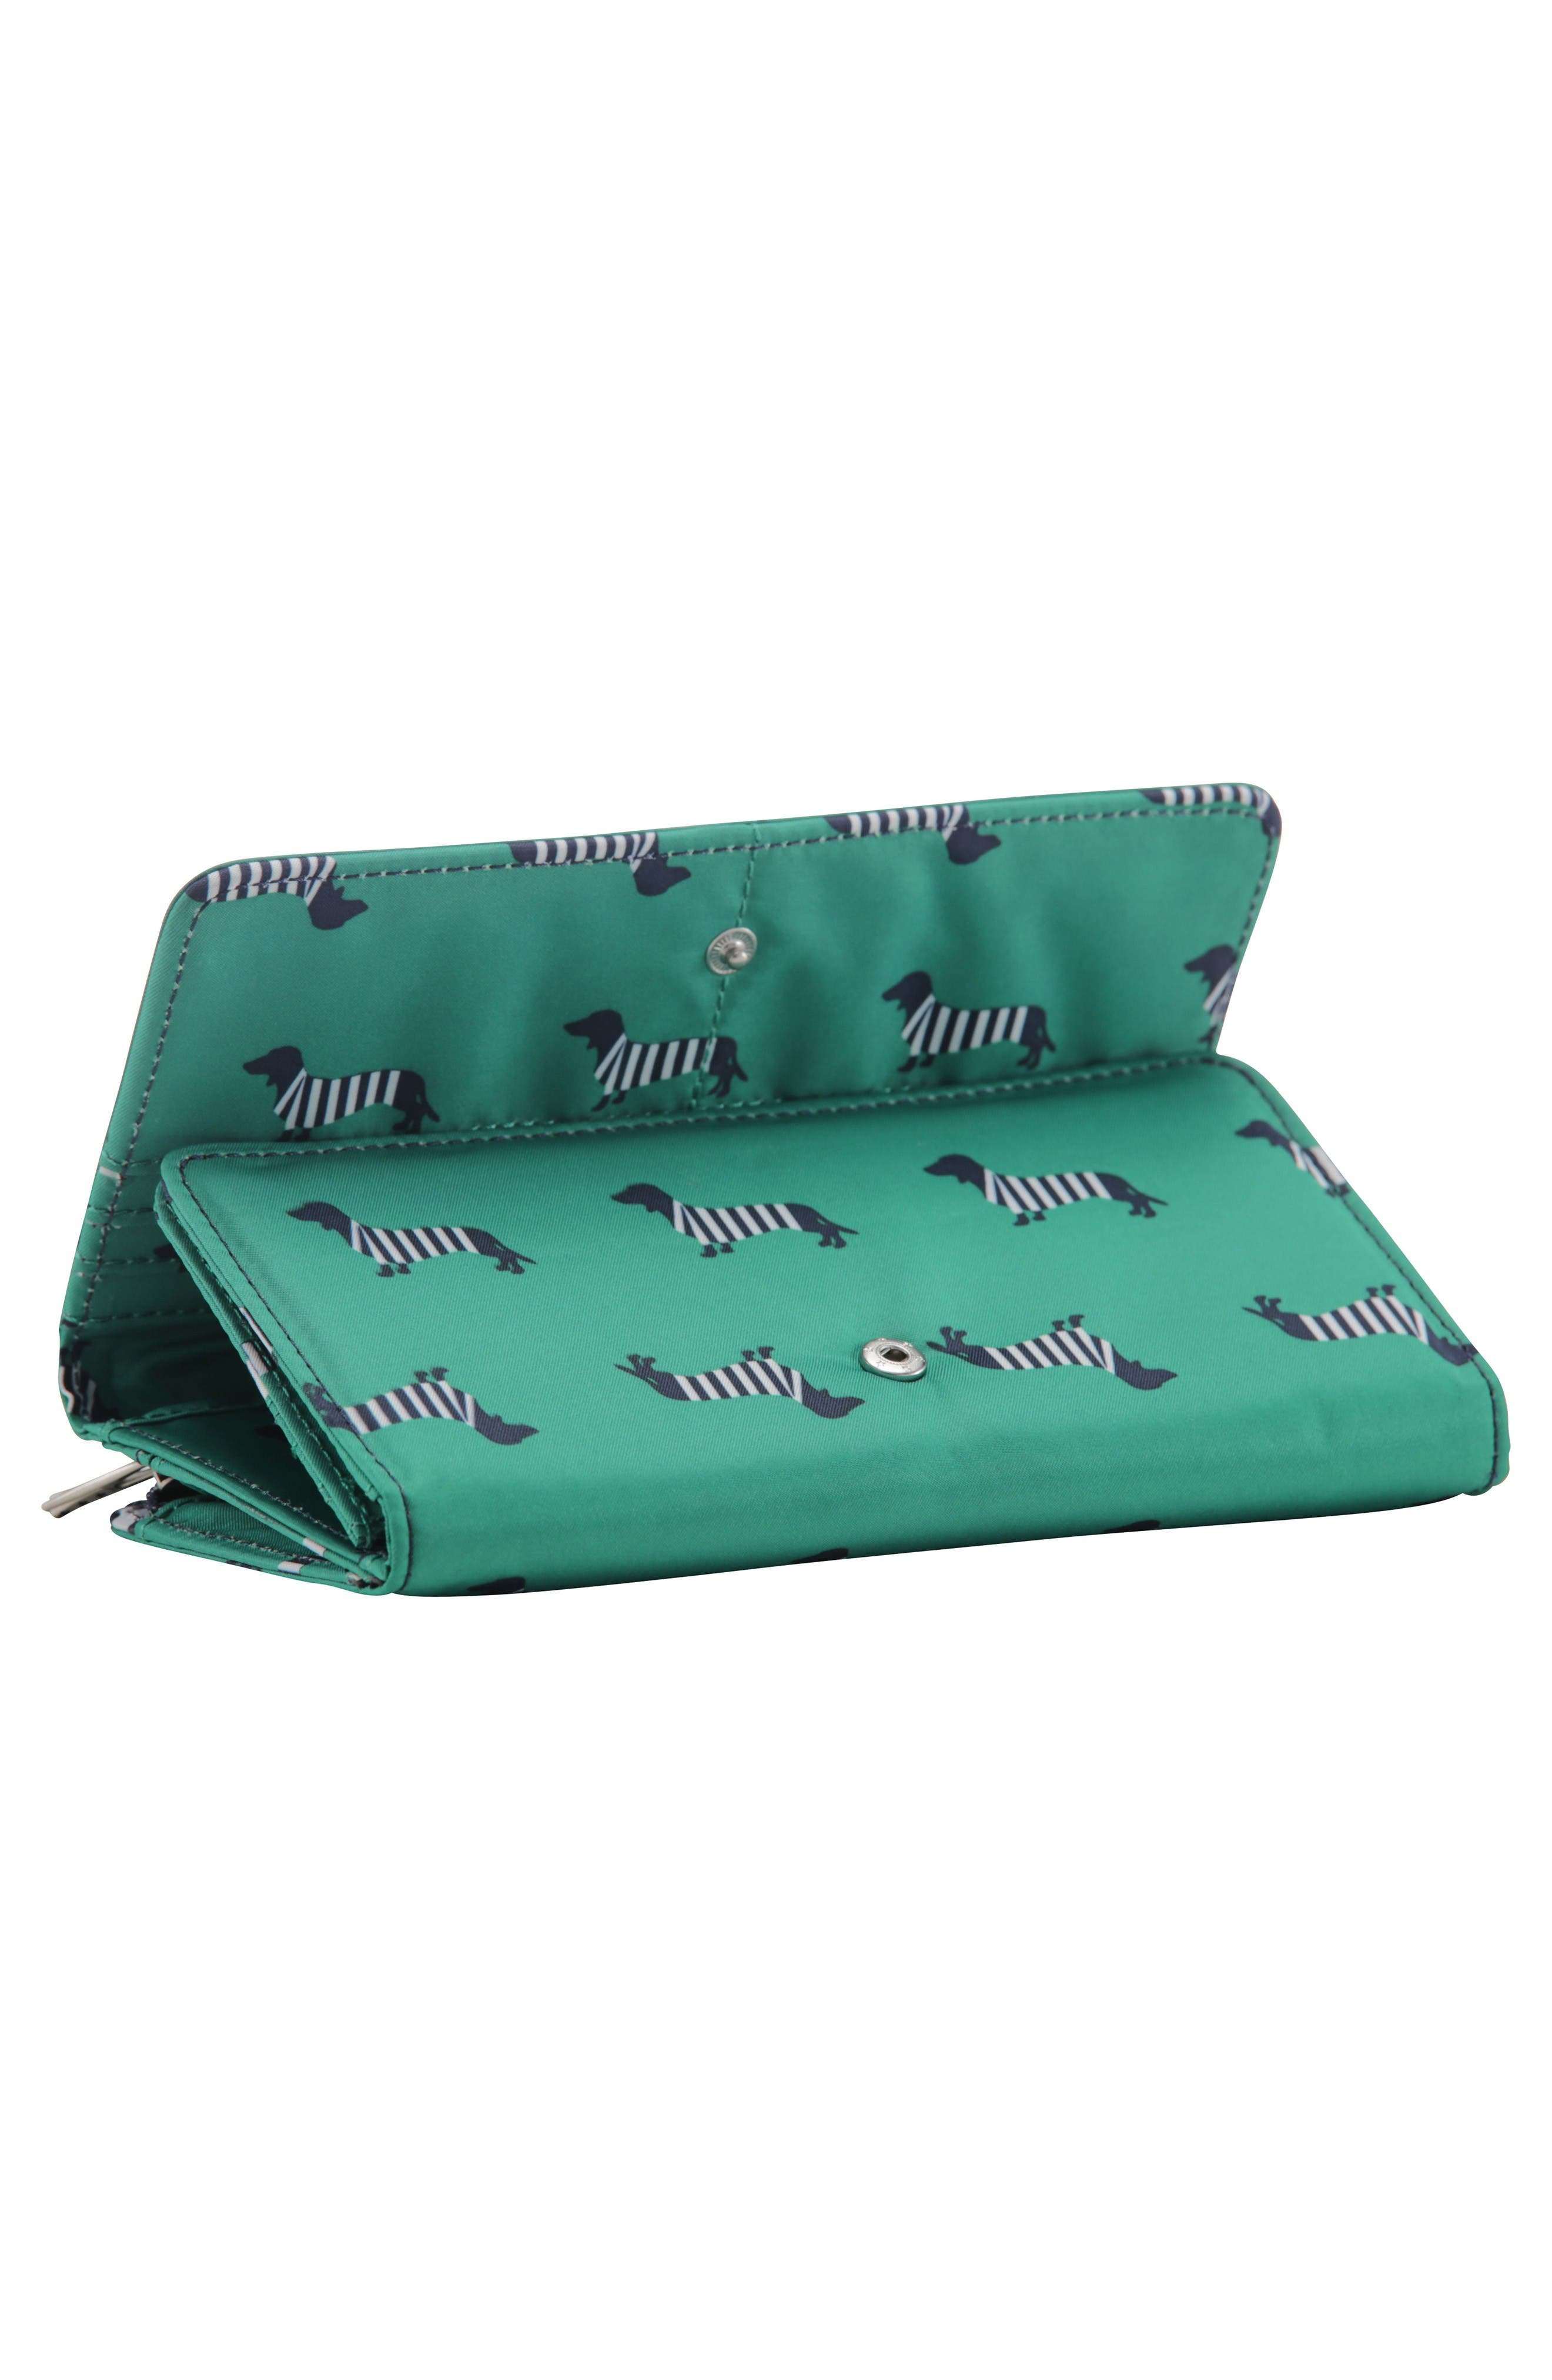 Be Rich - Coastal Collection Trifold Clutch Wallet,                             Alternate thumbnail 4, color,                             Coney Island